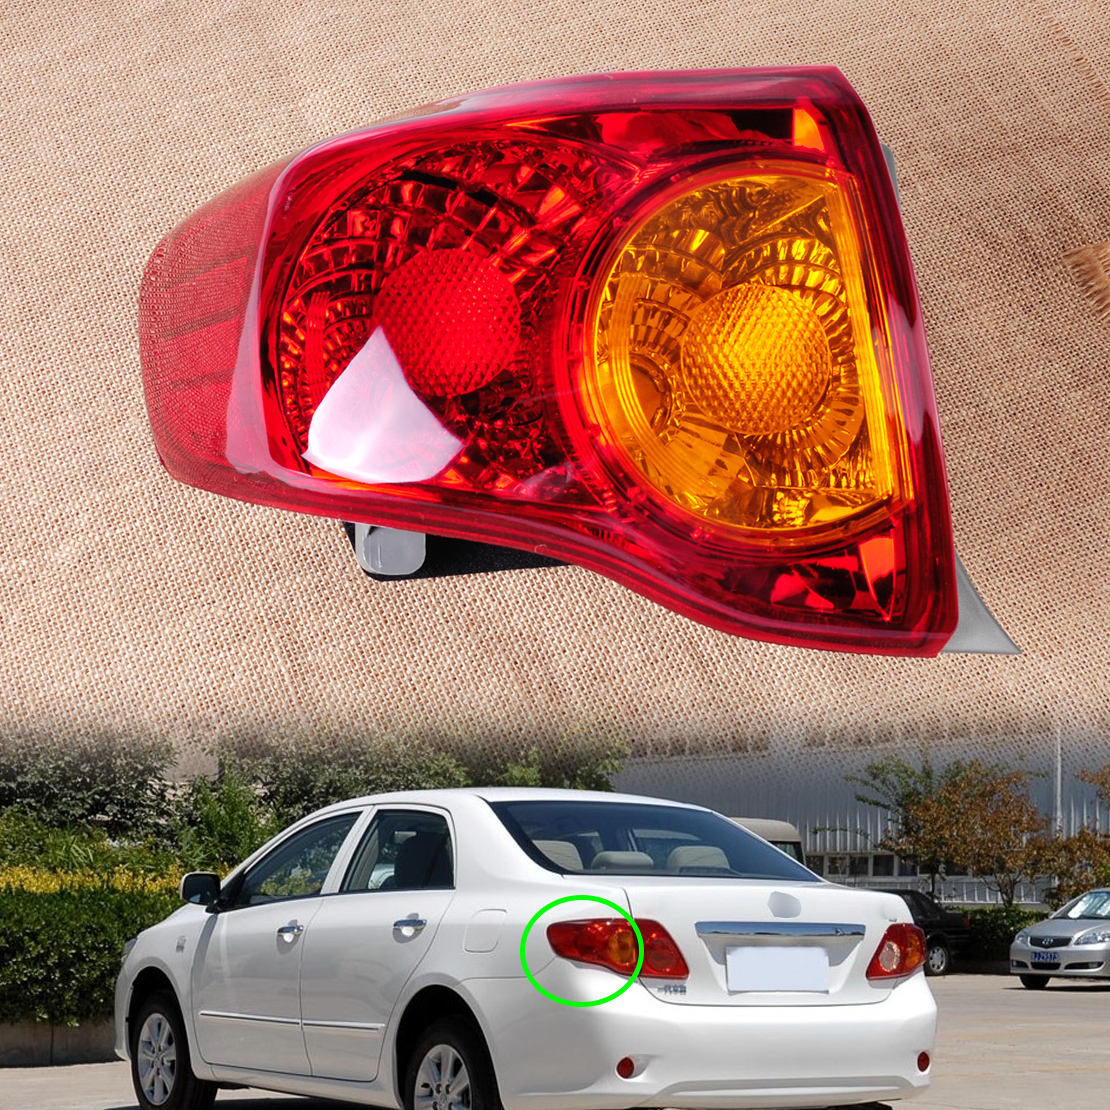 CITALL TO2800175 166-50863L Rear Left Tail Light Taillight Hoods Assembly Driver Side Brake Light for Toyota Corolla 2009 2010<br>